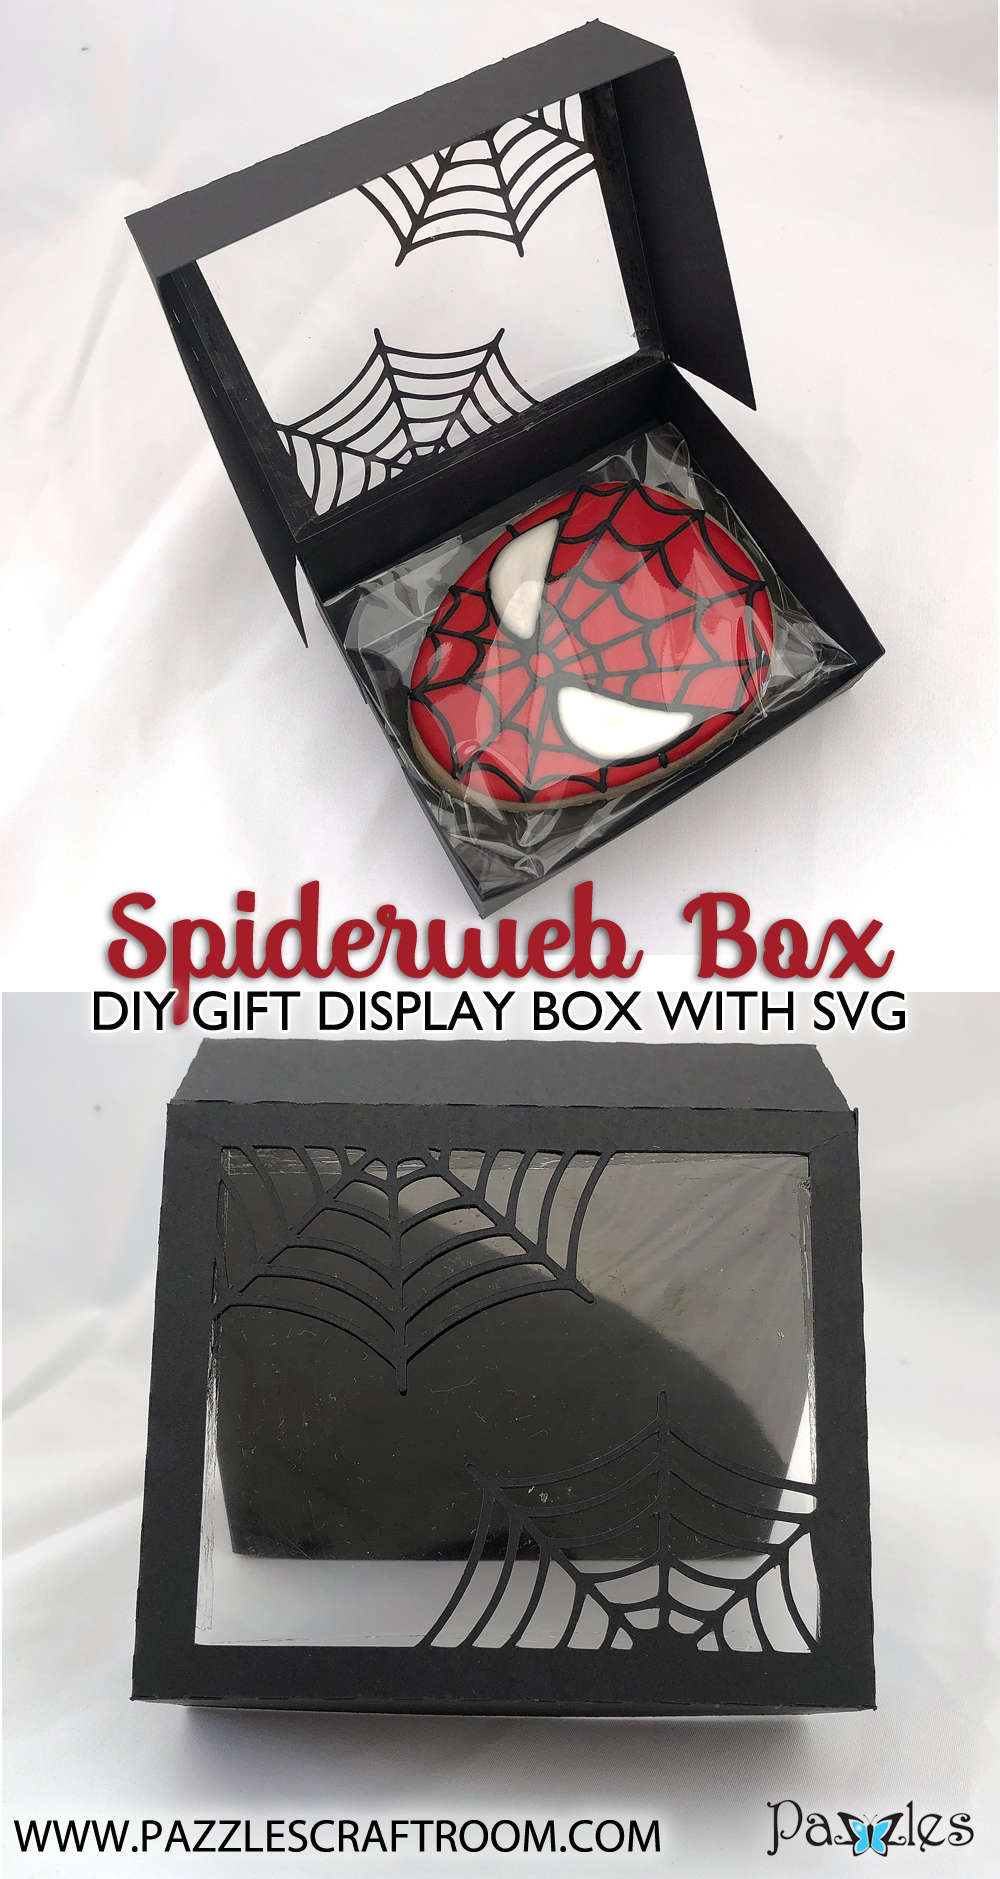 Pazzles DIY Spider Web Box for cookies or gifts. SVG instant download included. Compatible with all major electronic cutters including Pazzles Inspiration, Cricut, and Silhouette Cameo. Design by Alma Cervantes.